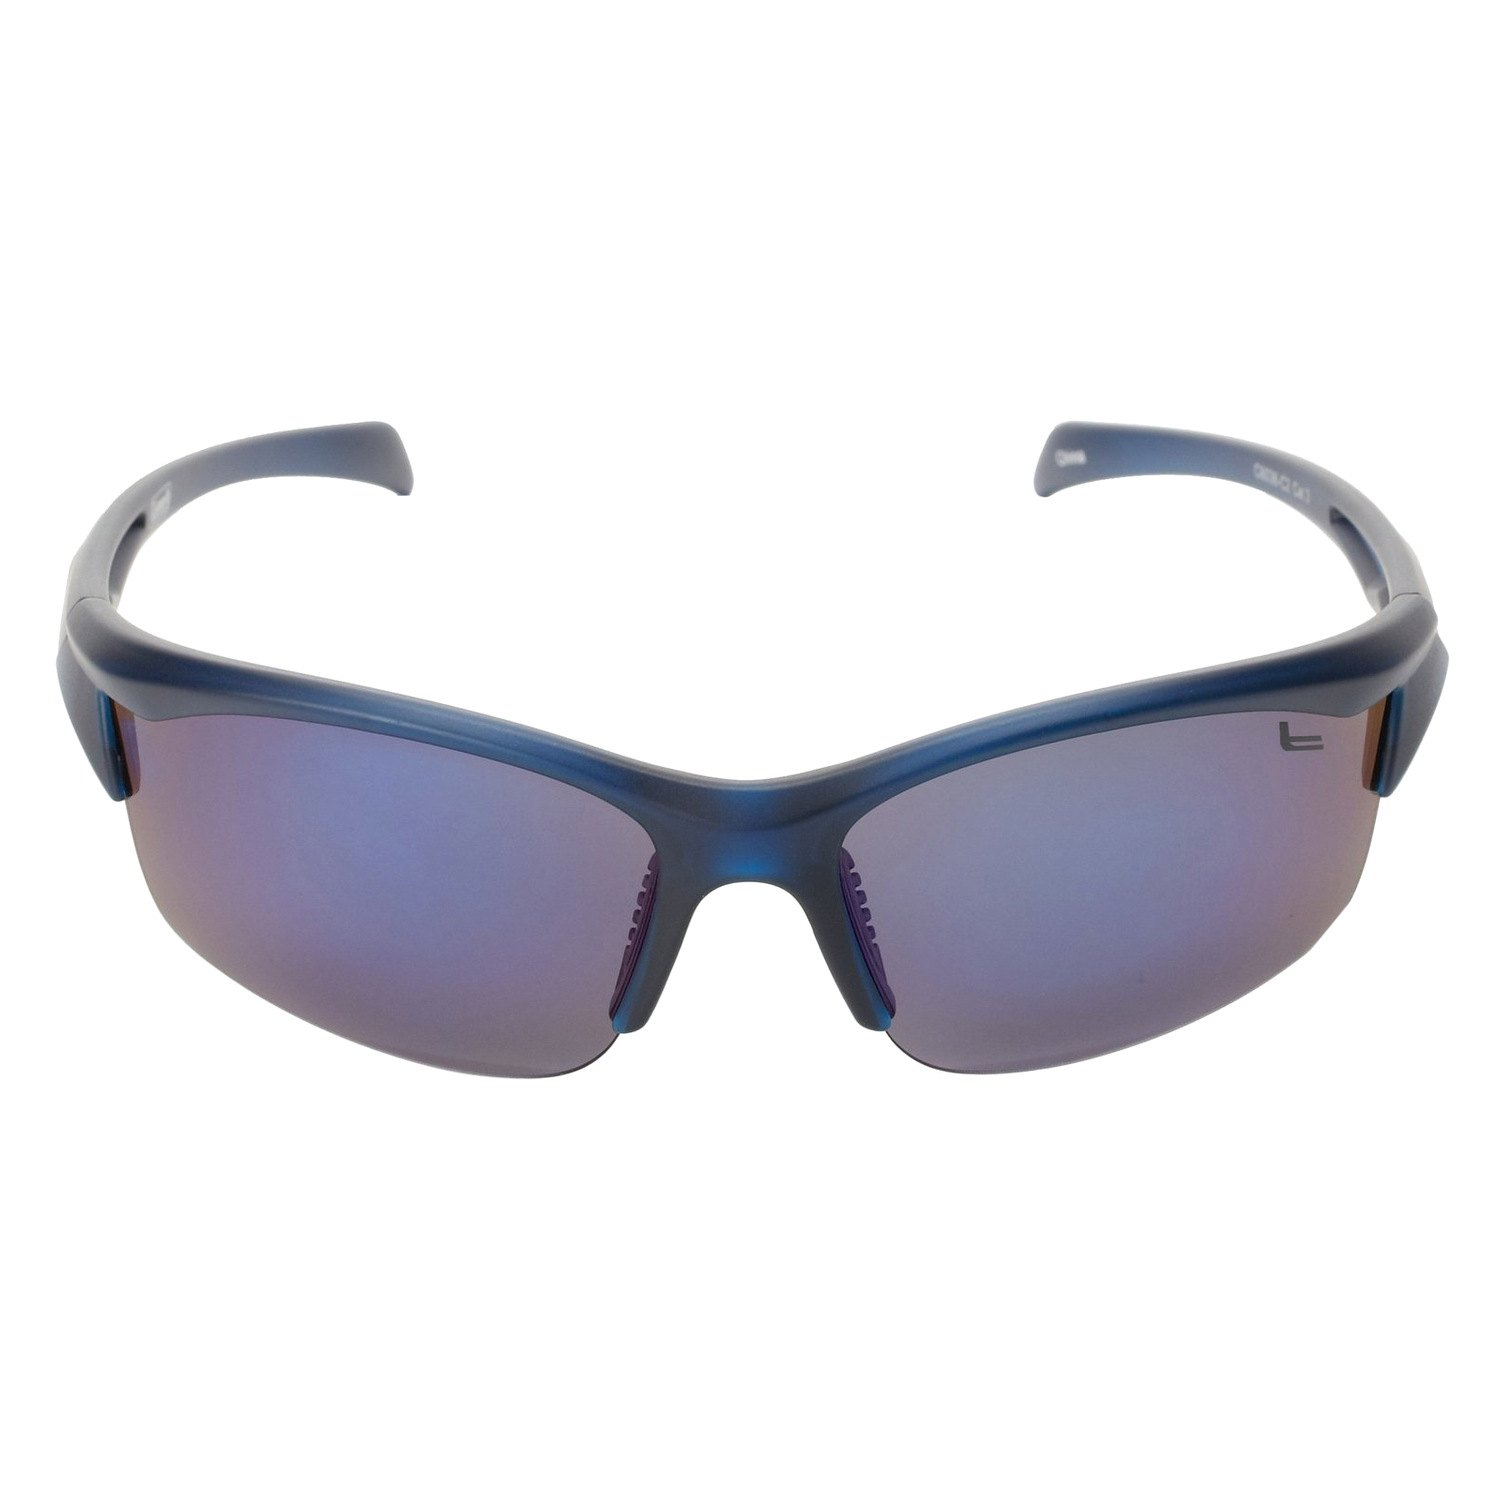 38ac9f2a1a Tac Glasses Review Part 2  One Month Later - Accroya Coleman® - Rock  Climber™ Polarized TAC Sunglasses